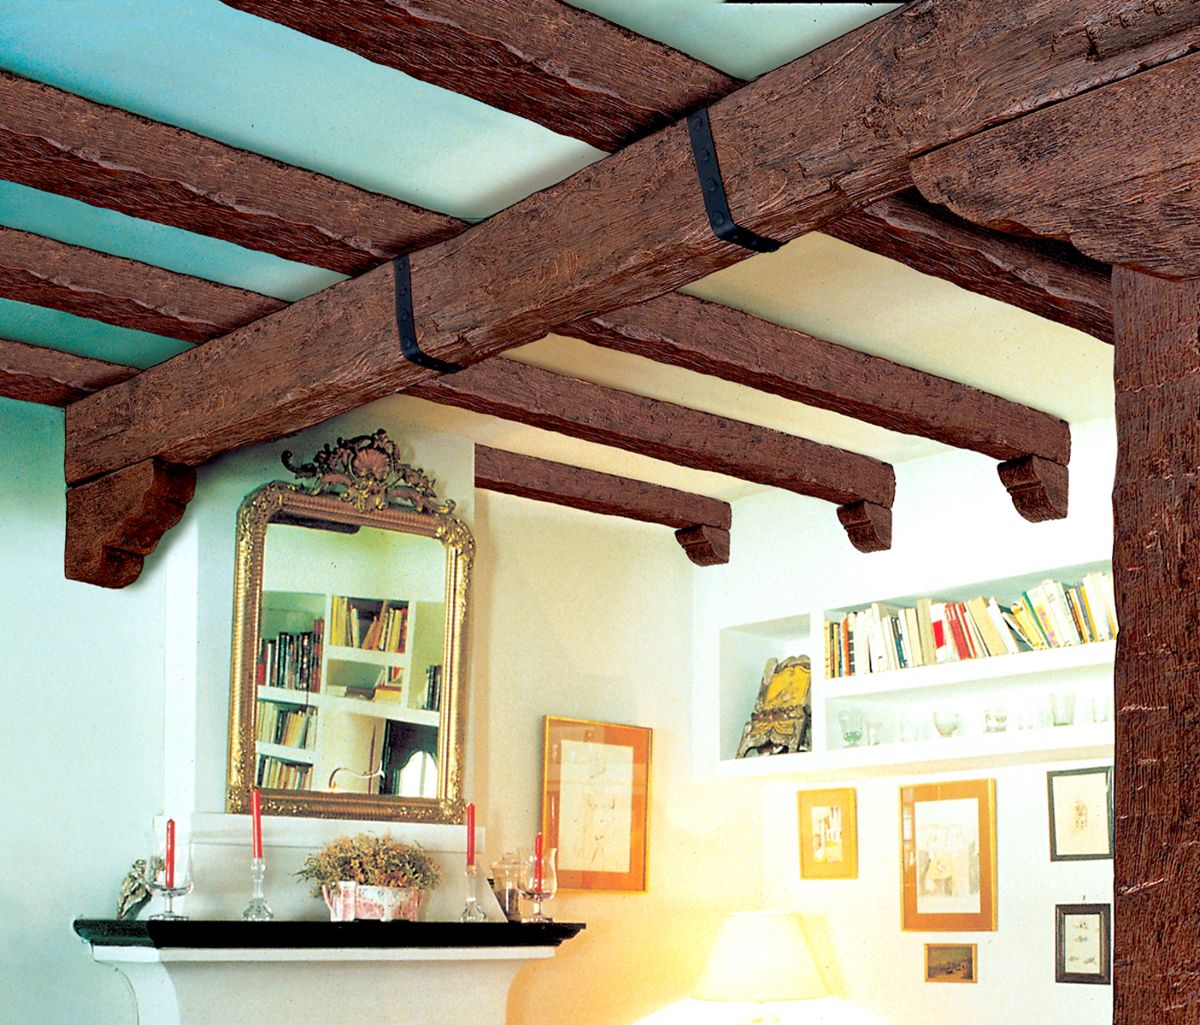 Outwateru0027s high density polyurethane Decorative Beams recreate the